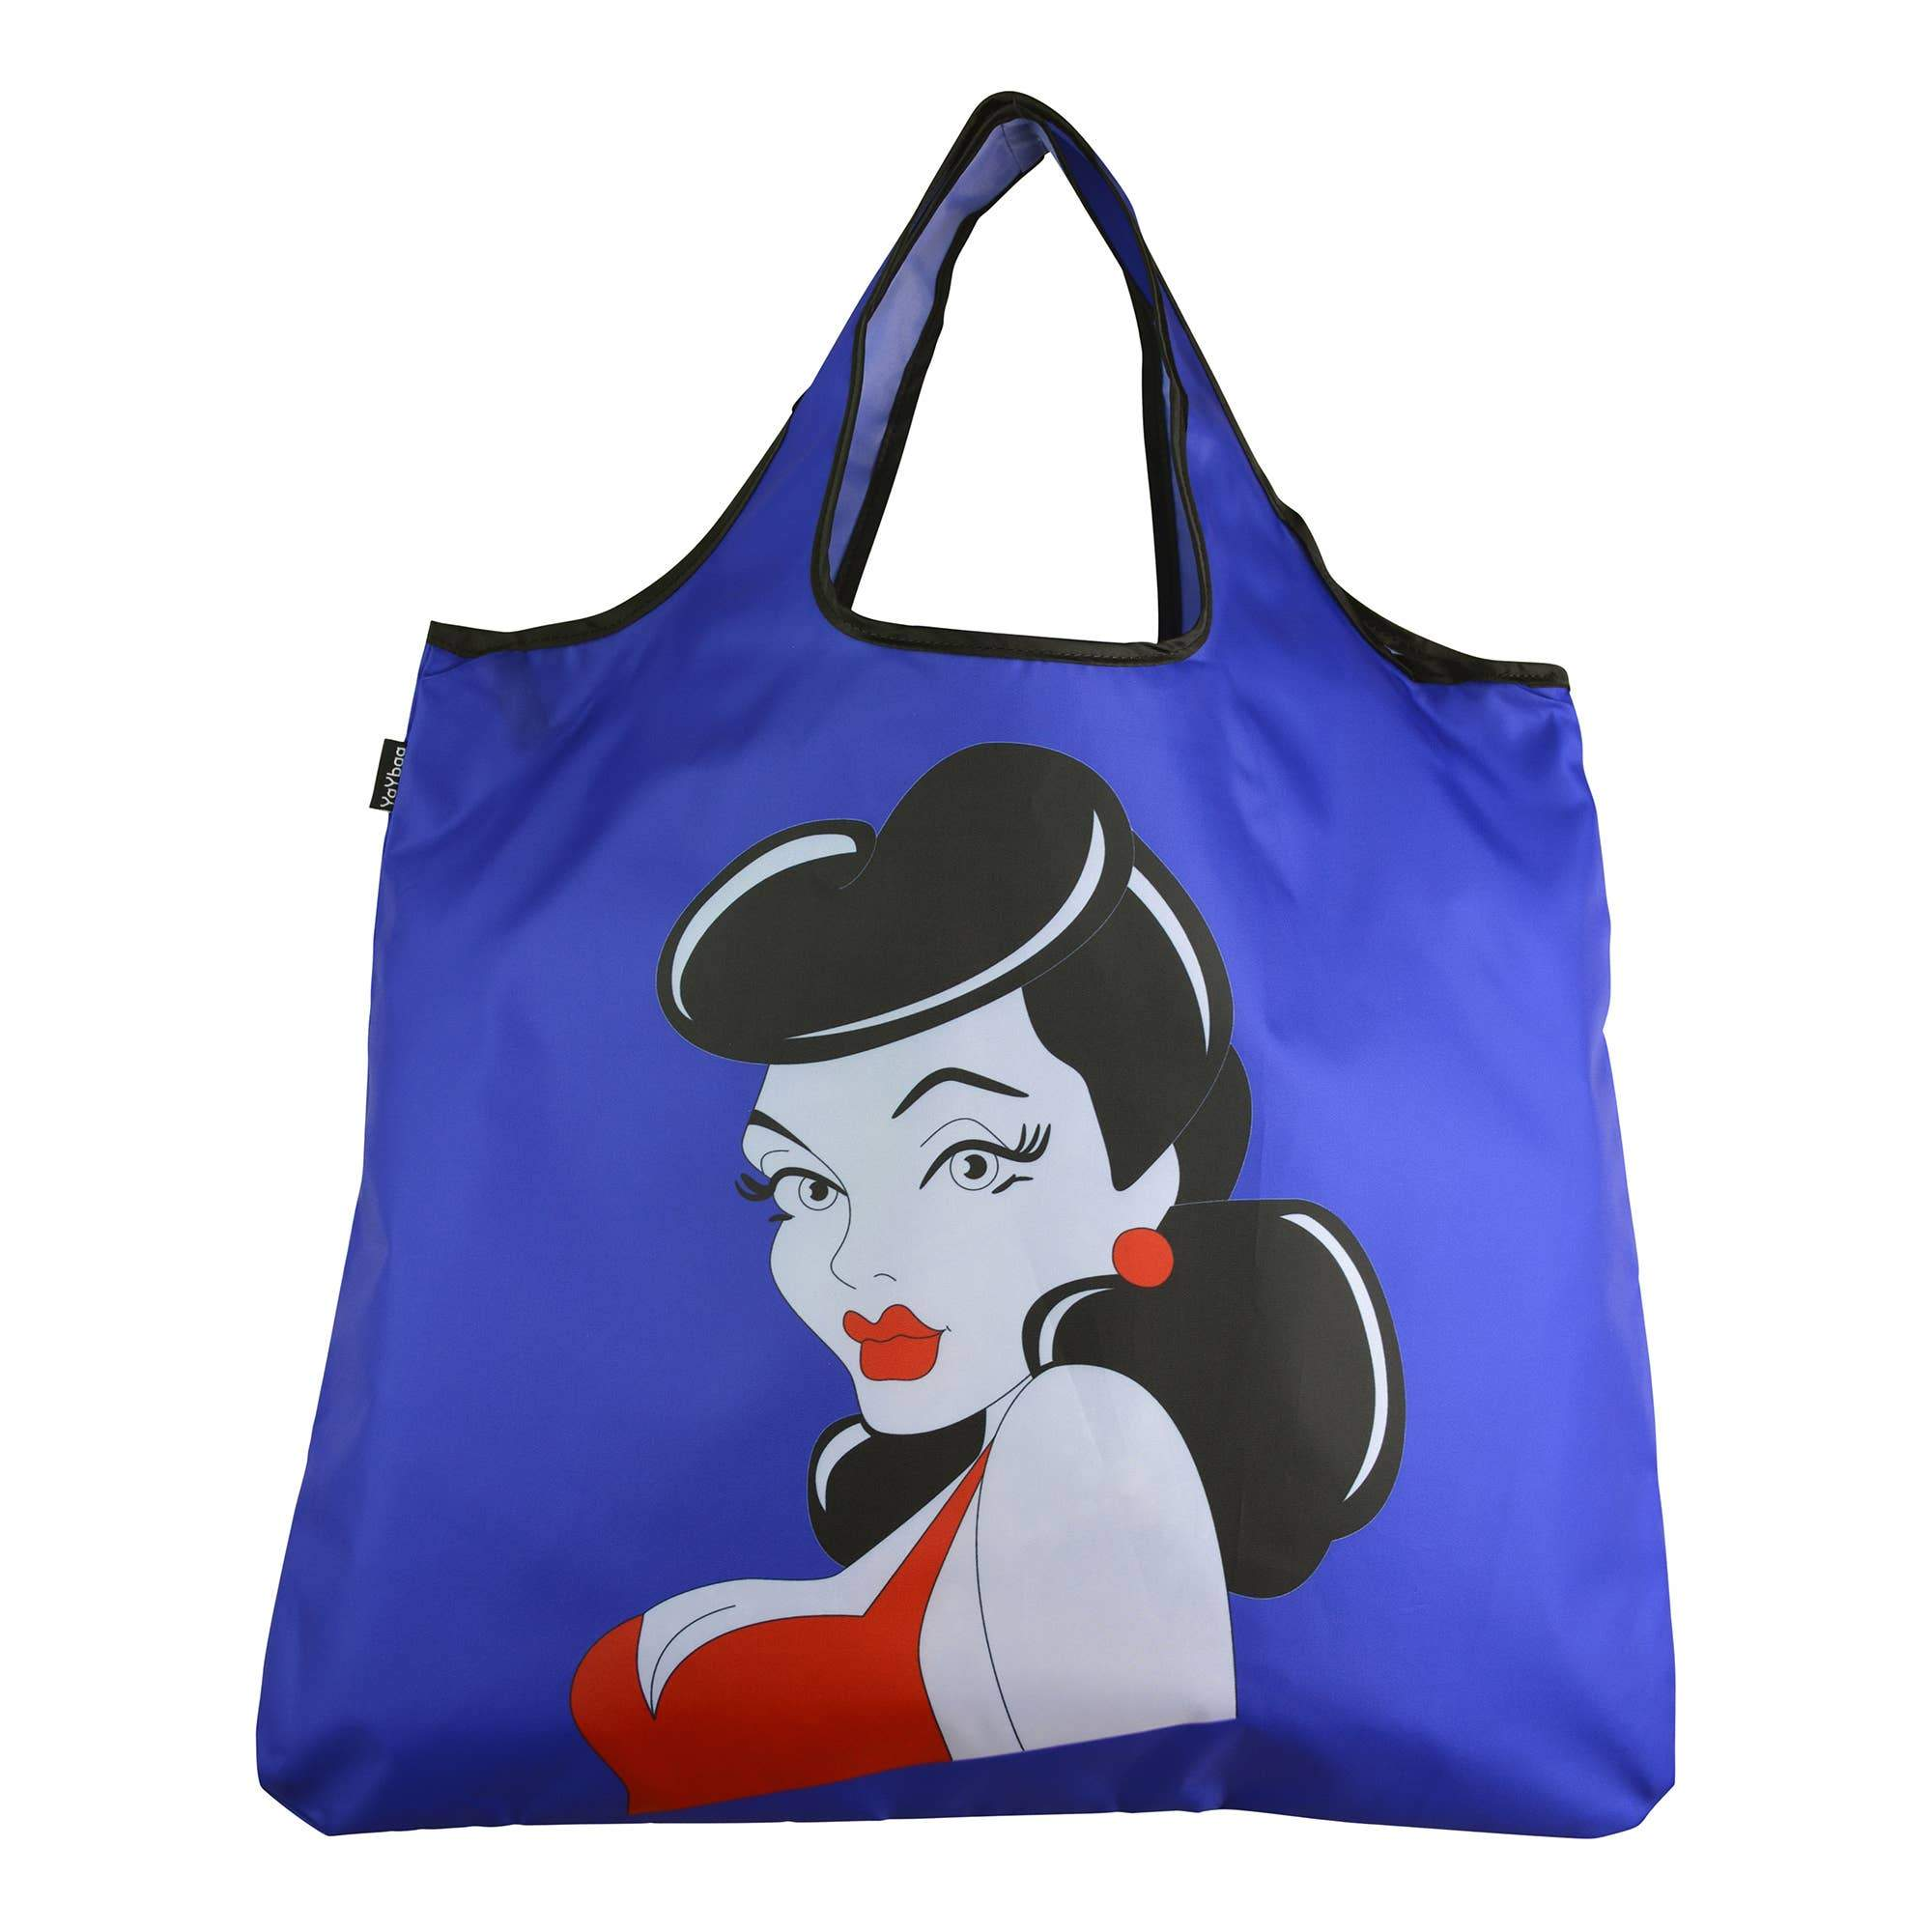 Buy YaYbag ORIGINAL - Pinup Bomshell from Walking Pants Curiosities, the Most un-General Gift Store in Downtown Memphis, Tennessee!